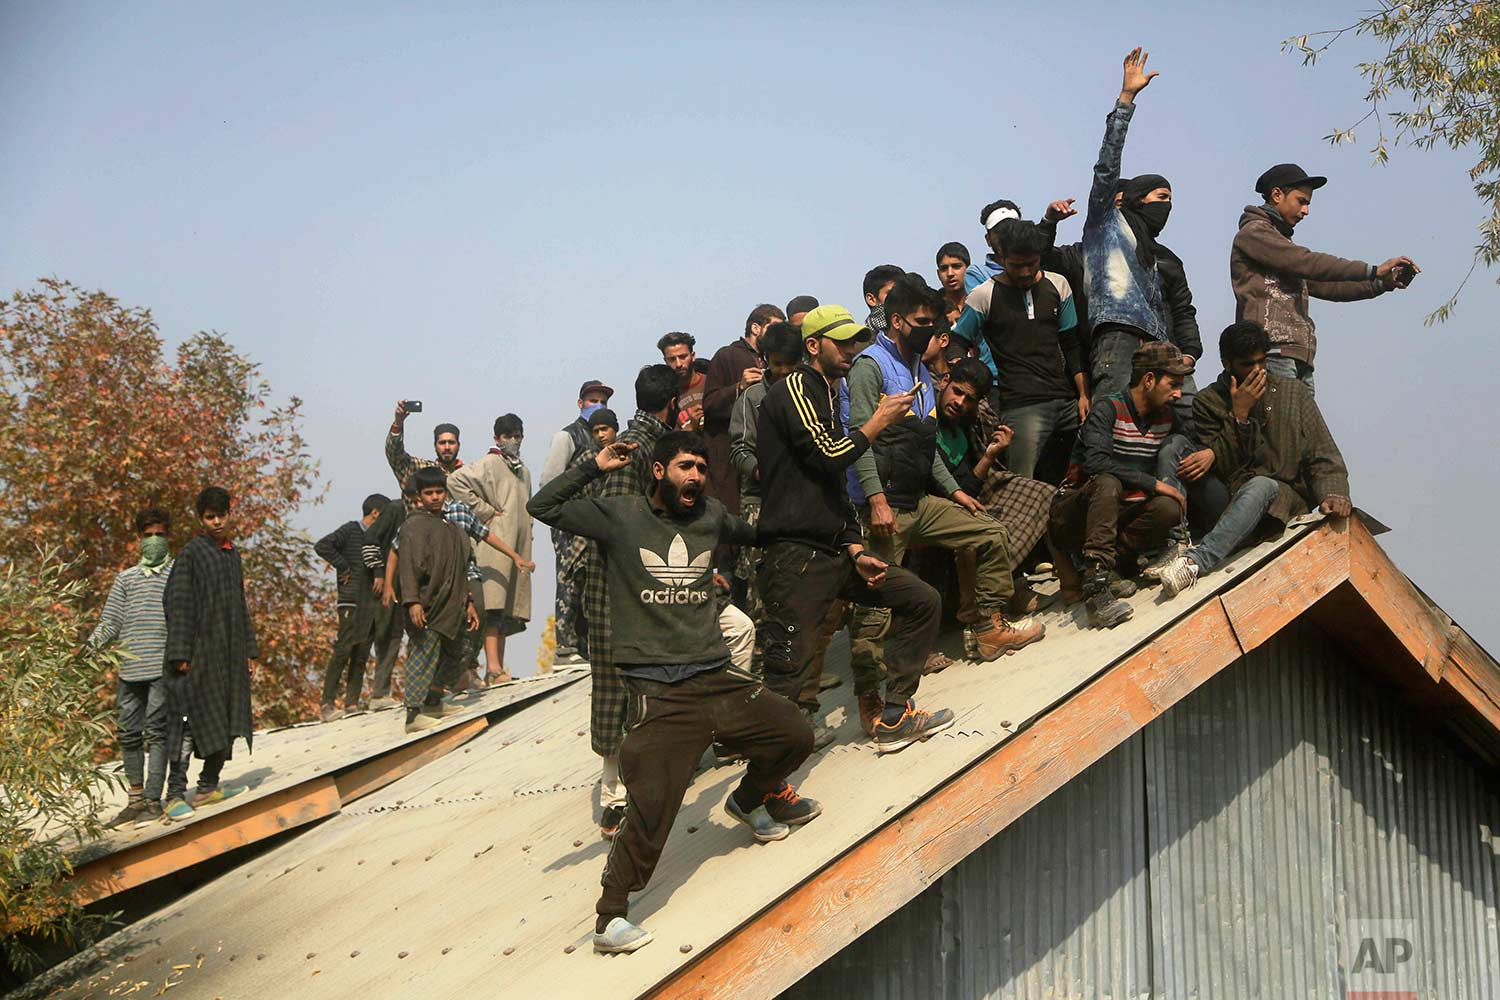 Kashmiri villagers shout pro-freedom slogans from a roof during the funeral procession for killed militant Waseem Ahmad in Drubgam, 48 kilometers (30 miles) south of Srinagar, Indian controlled Kashmir, Tuesday, Nov. 7, 2017. (AP Photo/Mukhtar Khan)